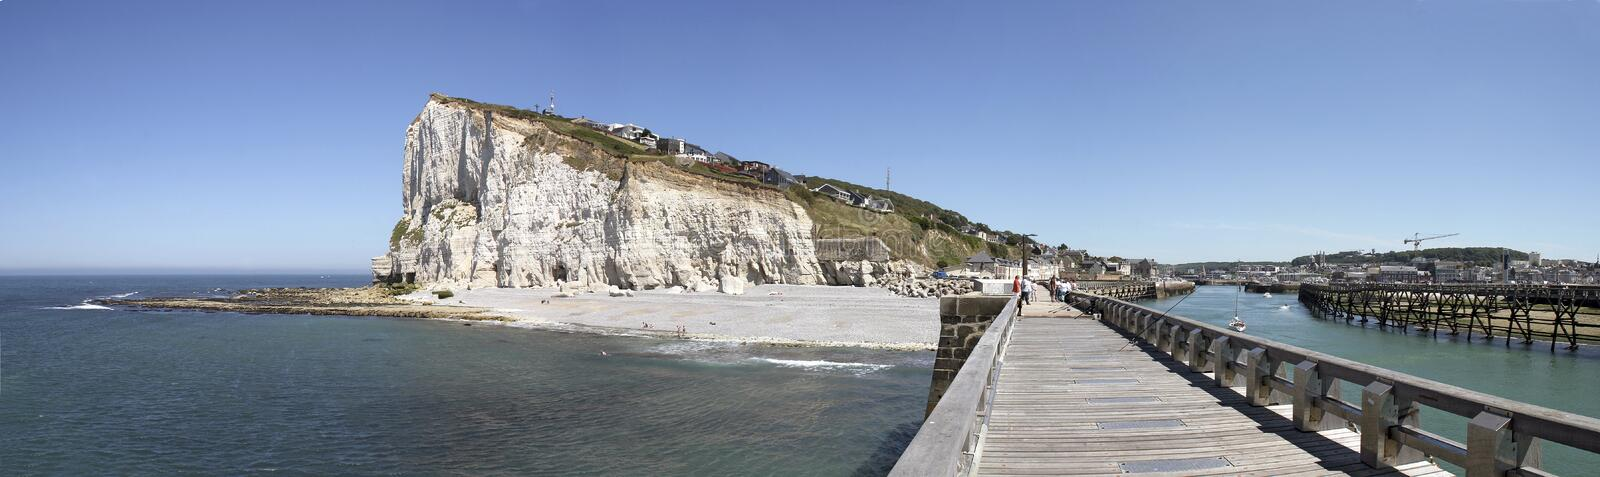 Download Coast of Normandy stock photo. Image of coast, rock, boat - 25420724